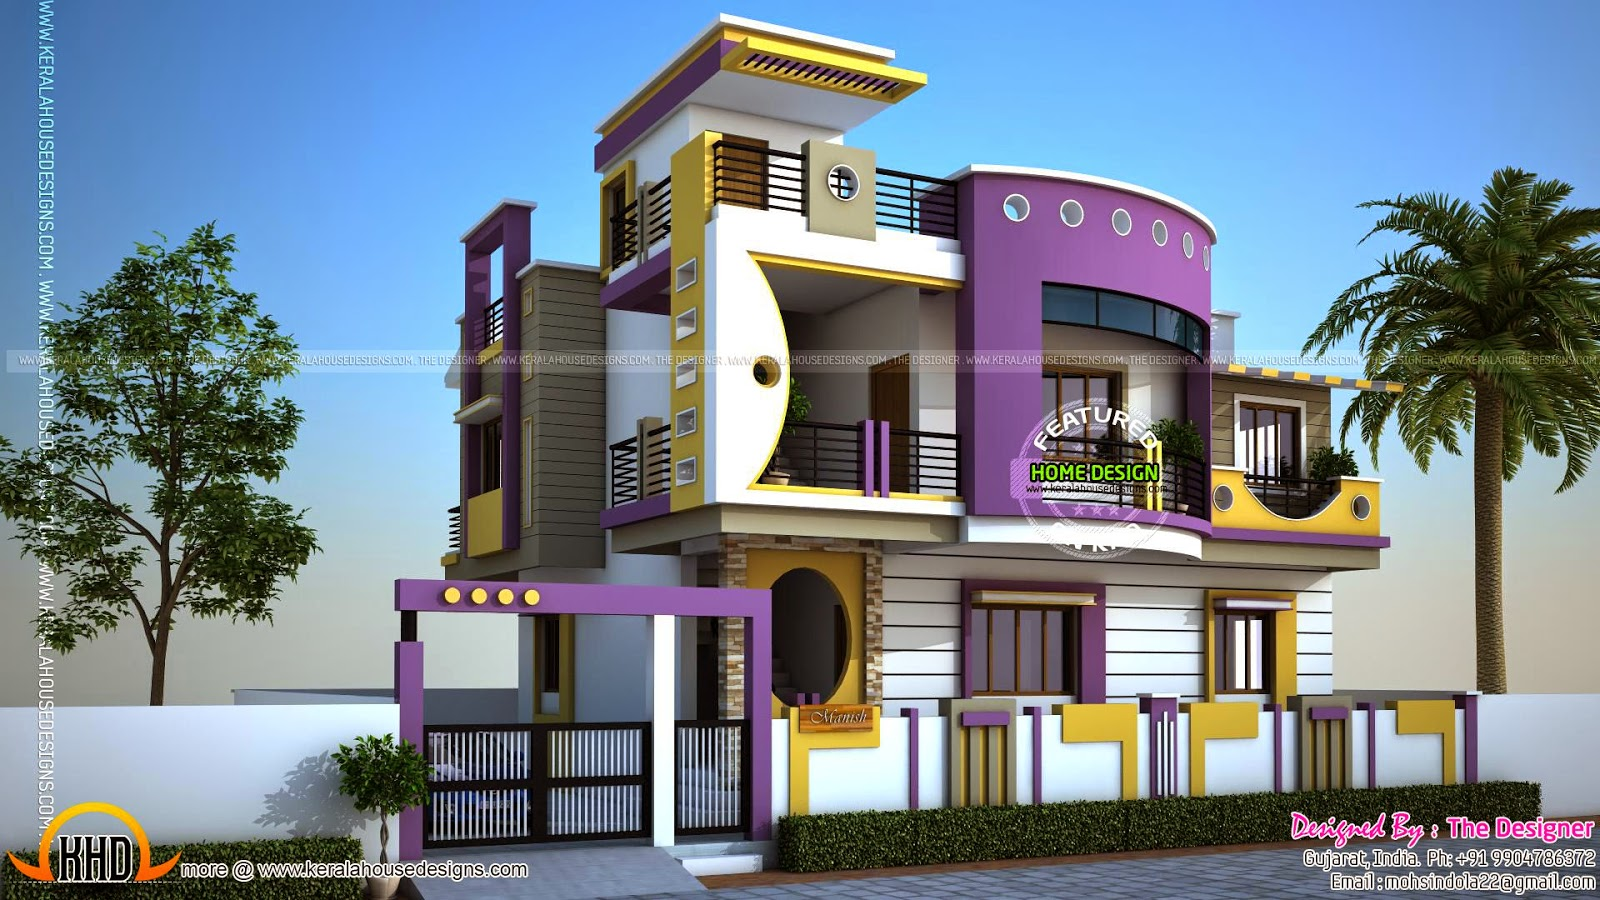 House exterior designs in contemporary style kerala home for Small house interior and exterior design